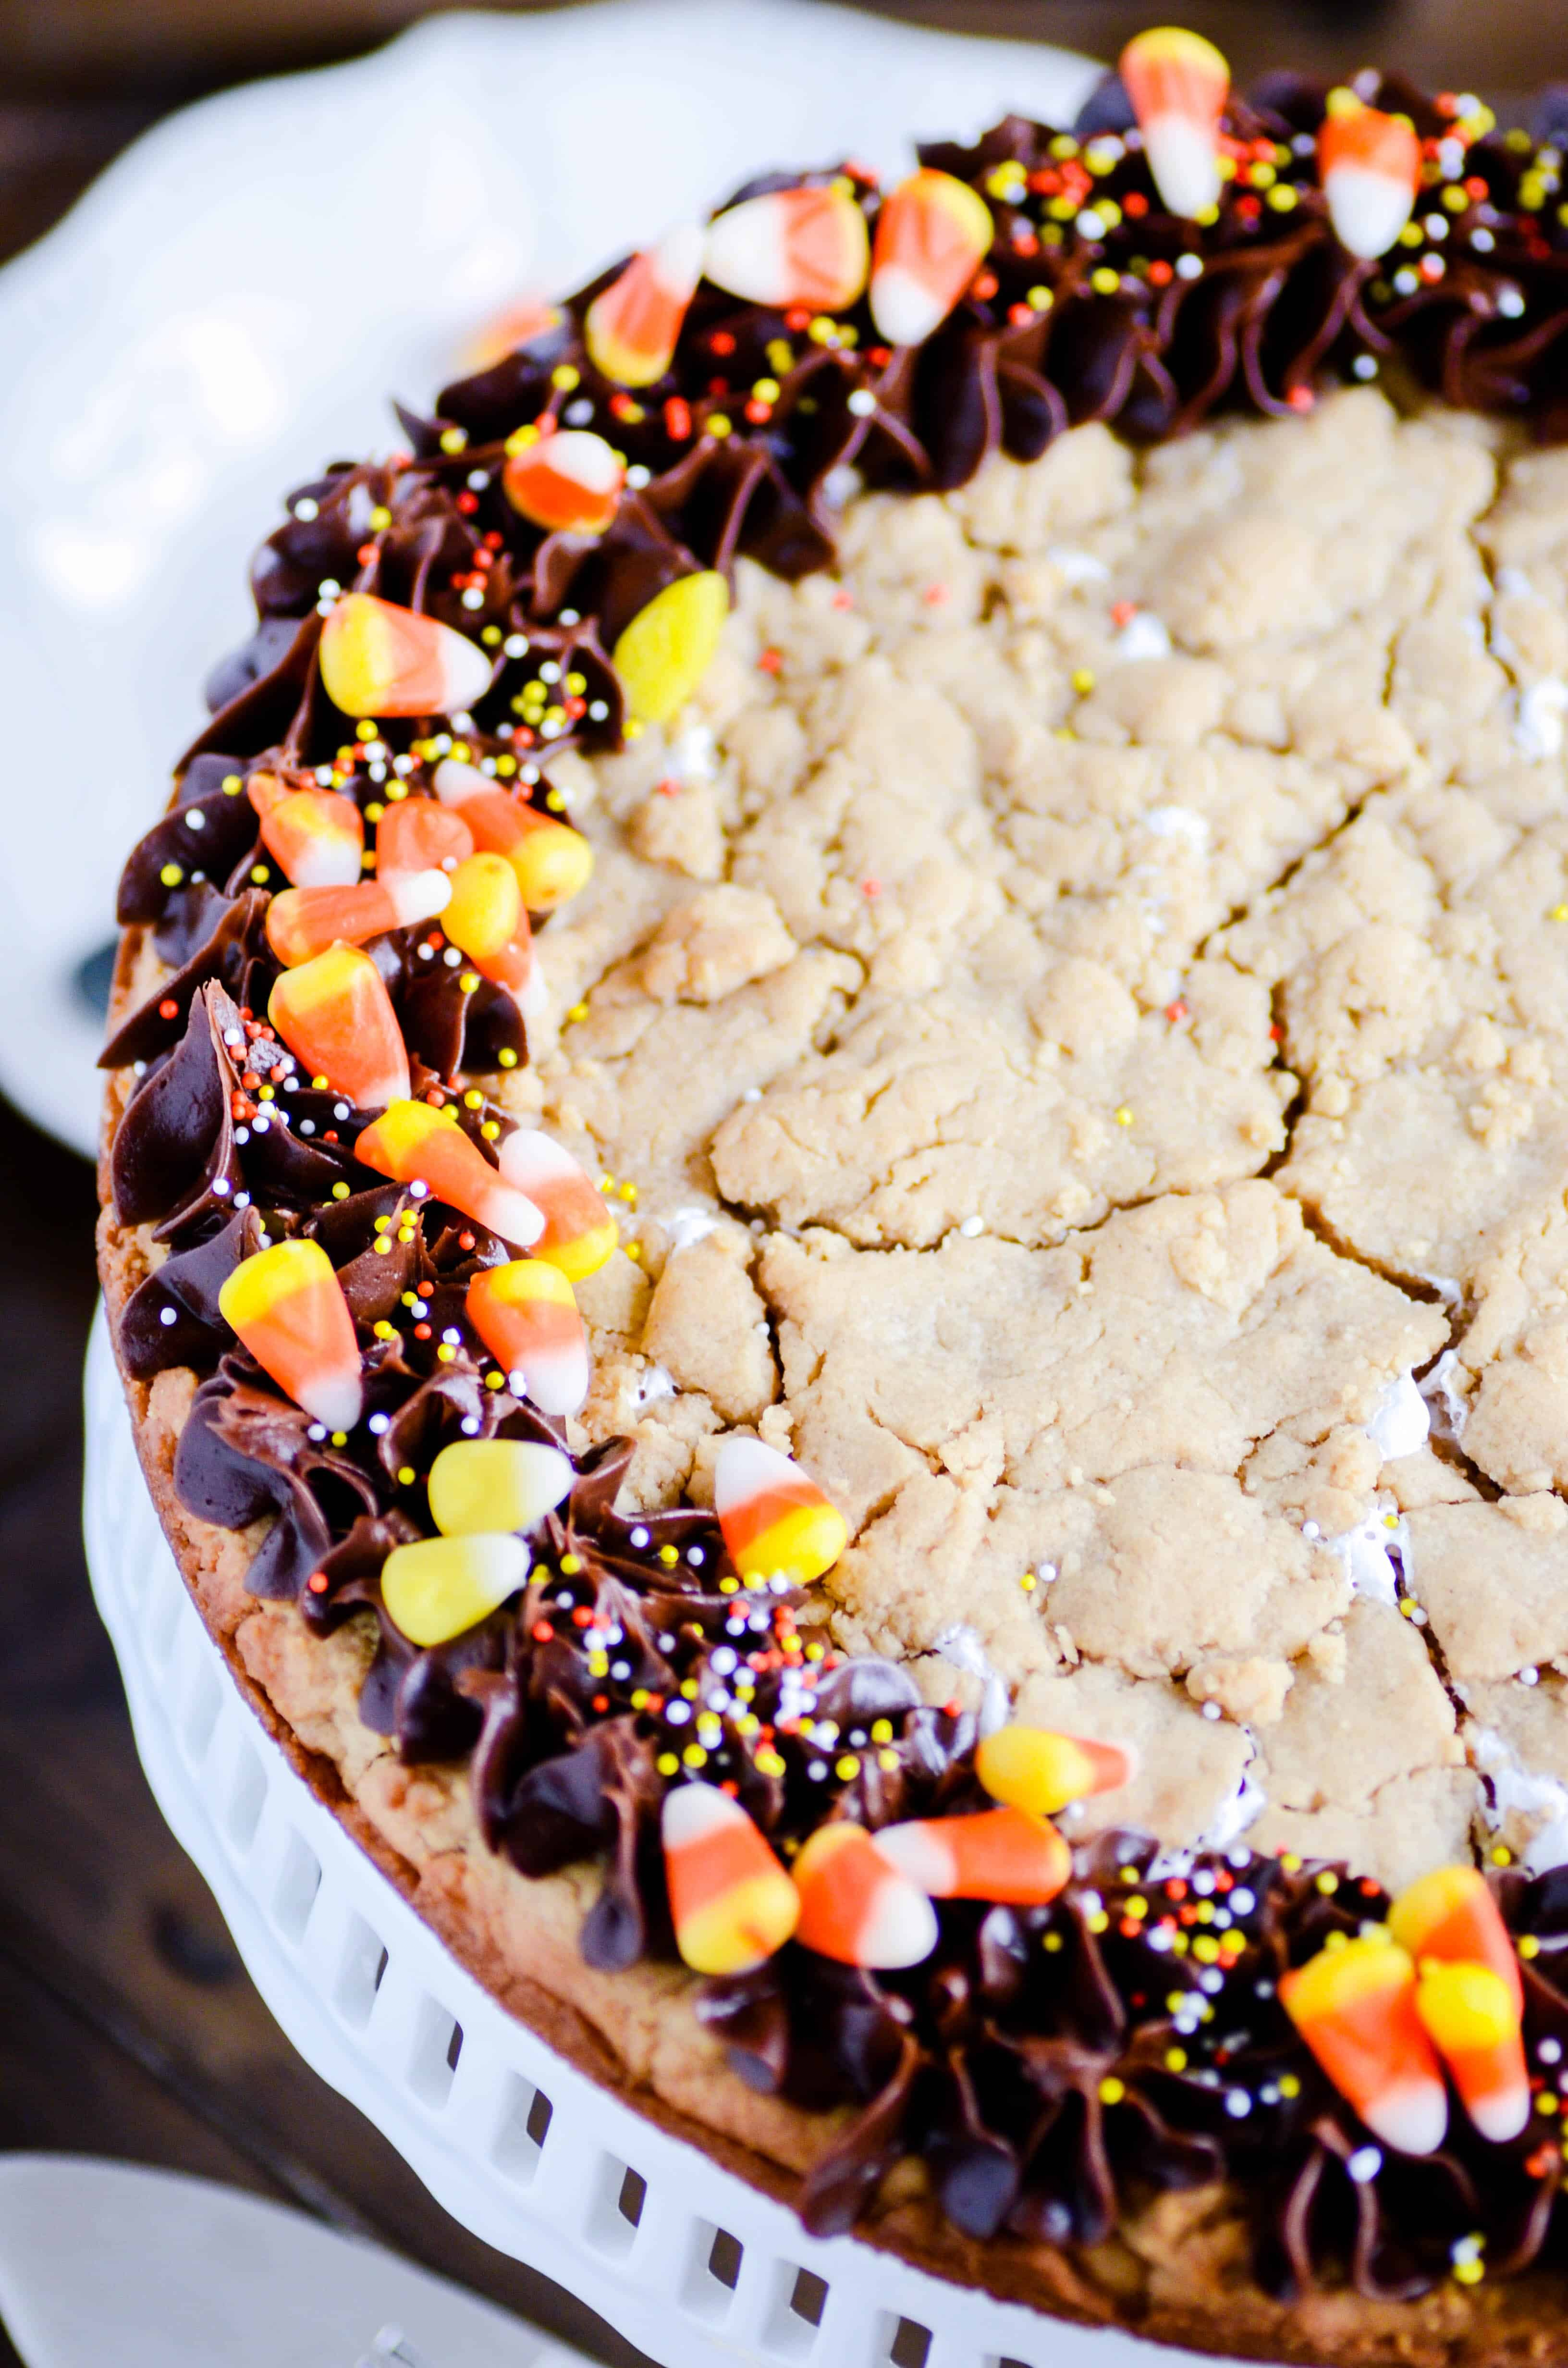 Peanut Butter Marshmallow Cookie Cake